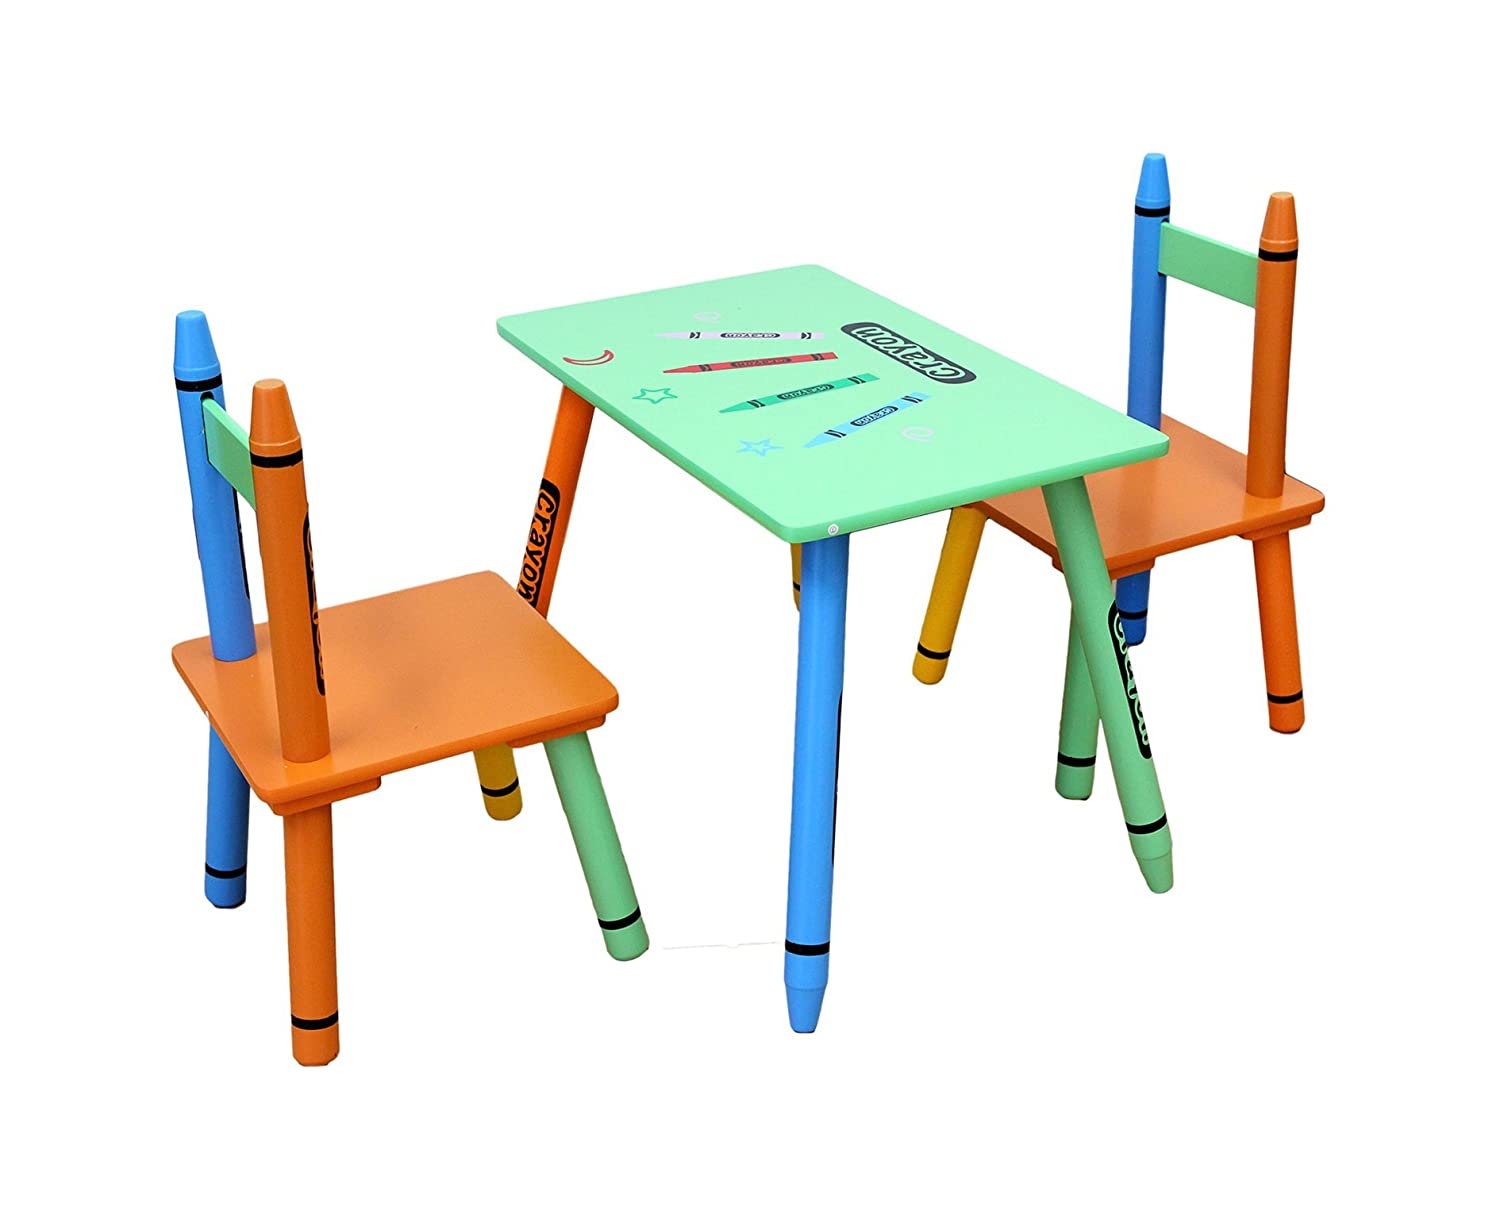 Childrens solid Wooden chairs and table set - Crayon Kids Furniture Bedroom Play Roos m Amazon.co.uk Kitchen u0026 Home  sc 1 st  Amazon UK & Childrens solid Wooden chairs and table set - Crayon Kids Furniture ...